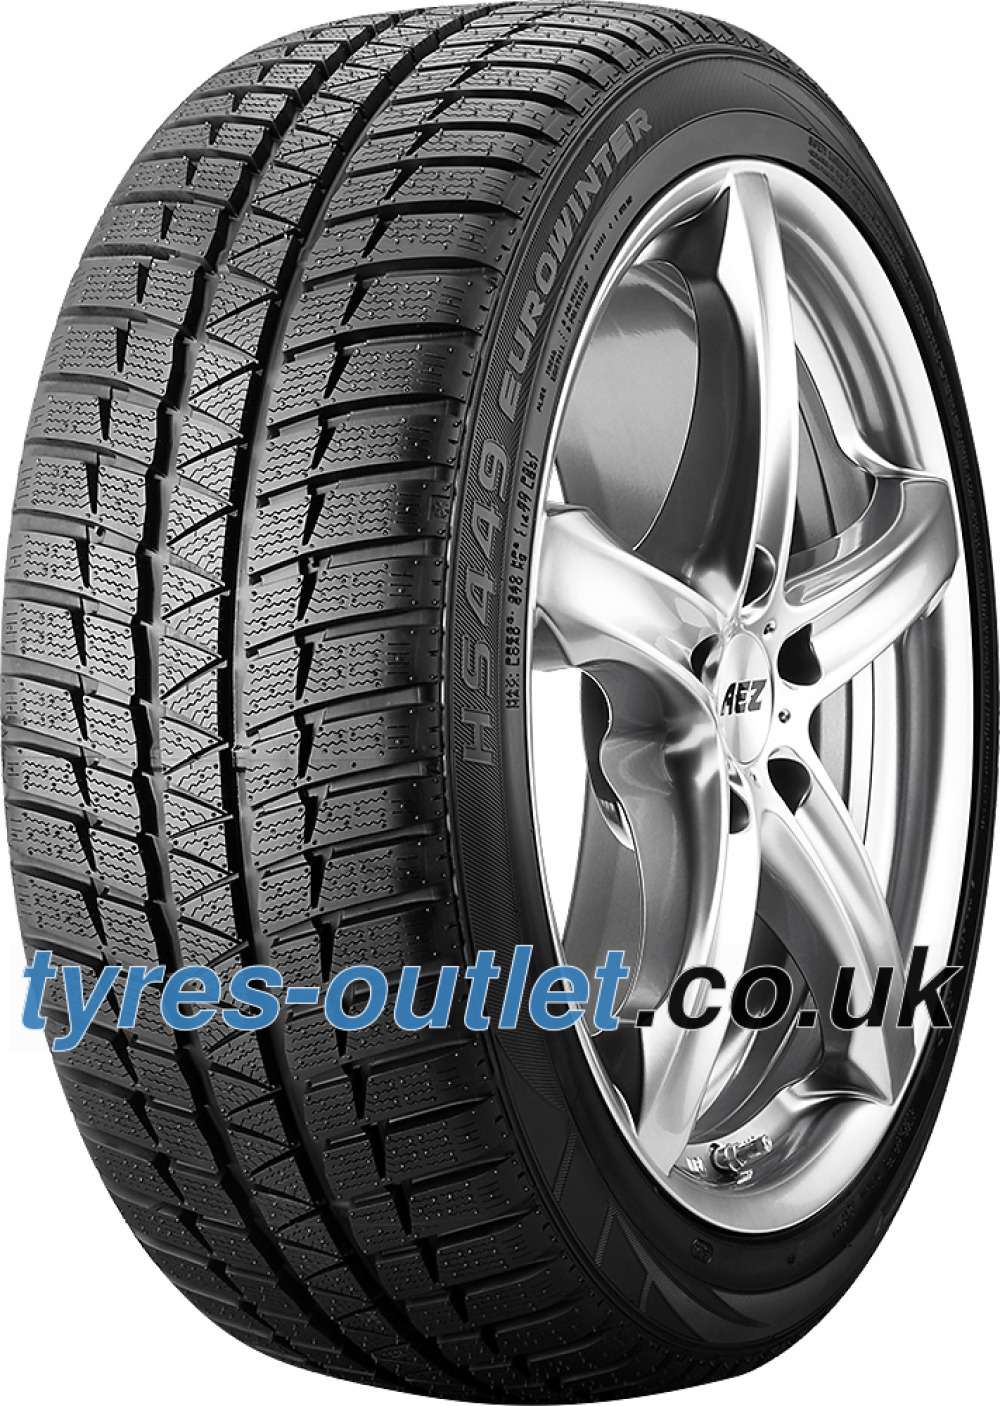 Falken Eurowinter HS449 RFT ( 245/40 R19 94V , runflat, with rim protection (MFS) )